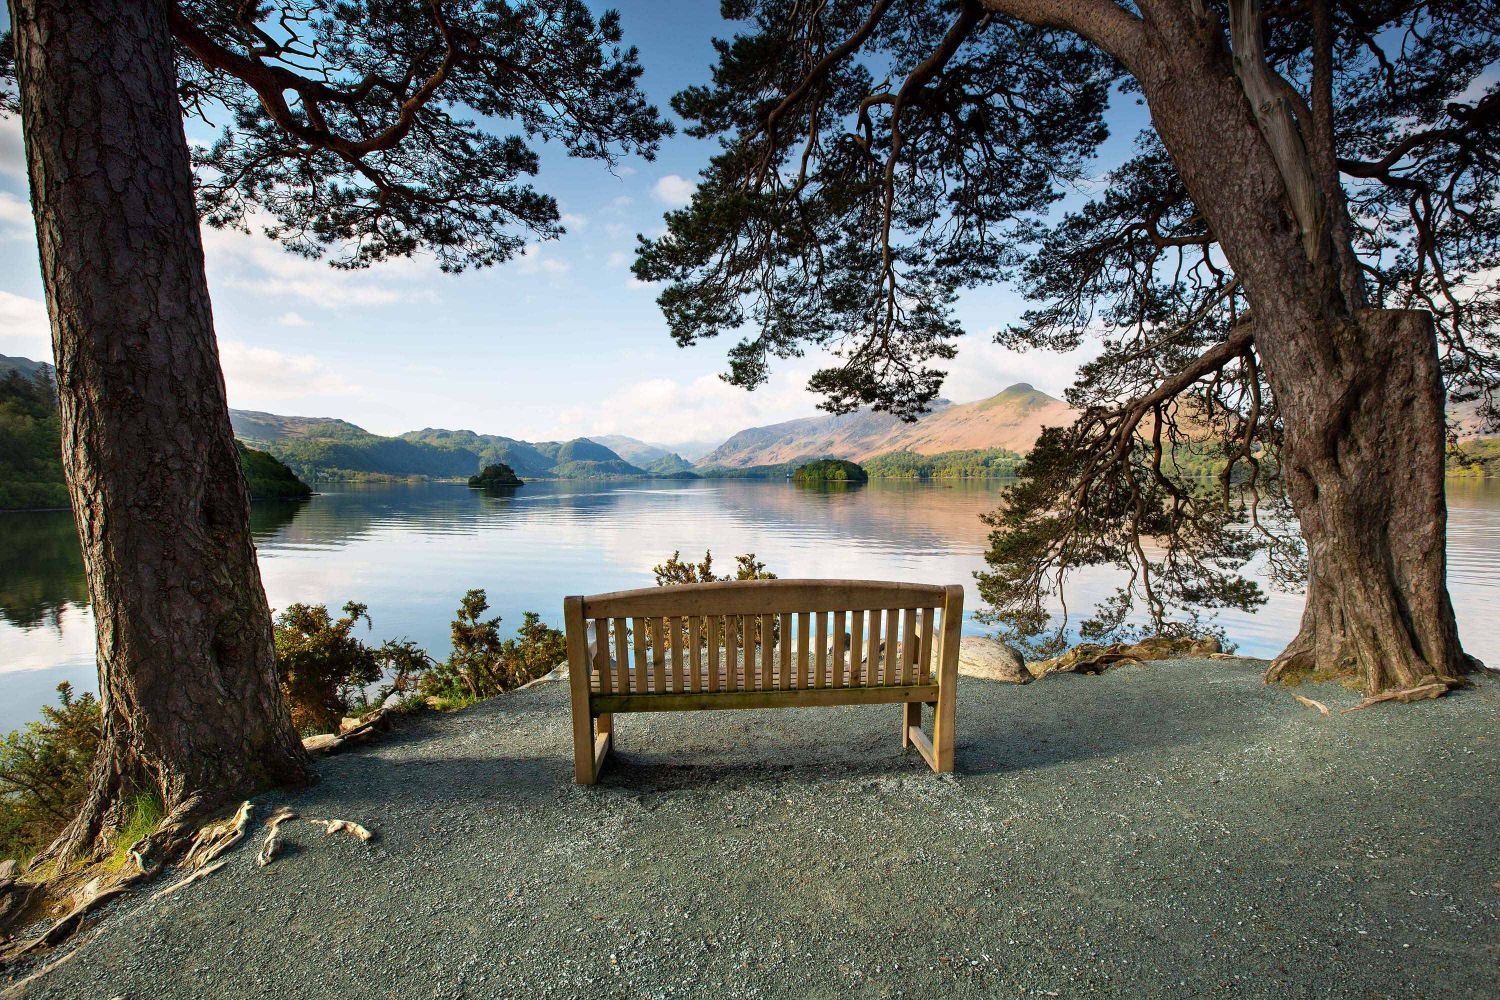 A time to reflect over the Jaws of Borrowdale